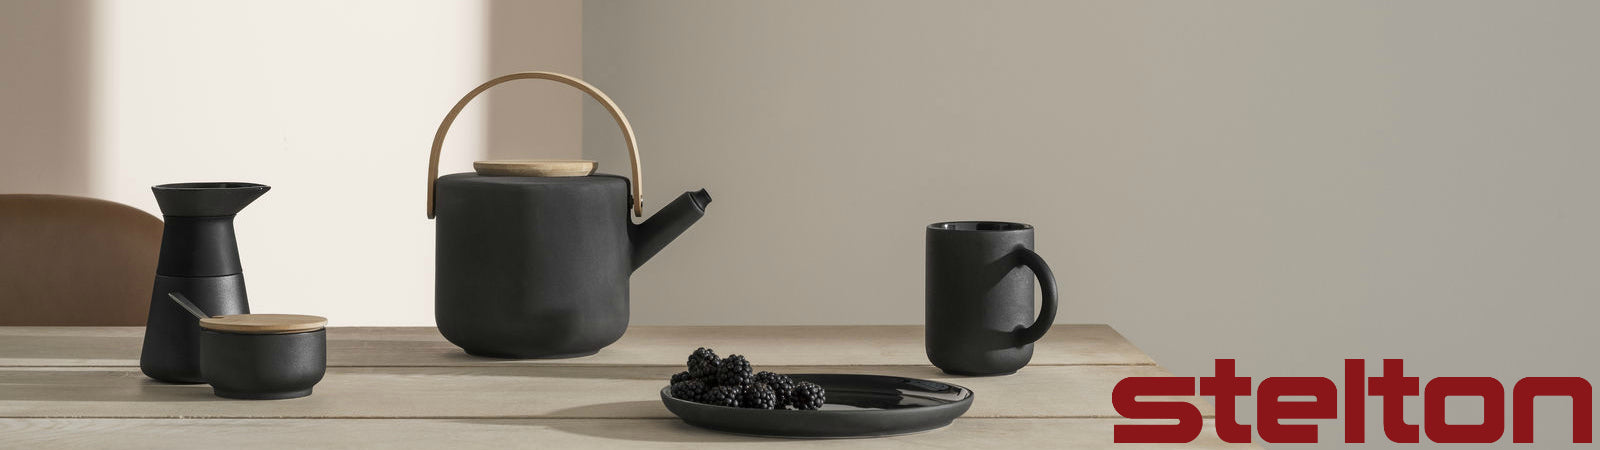 The Theo Tea Set from Stelton, available at Sportique.com